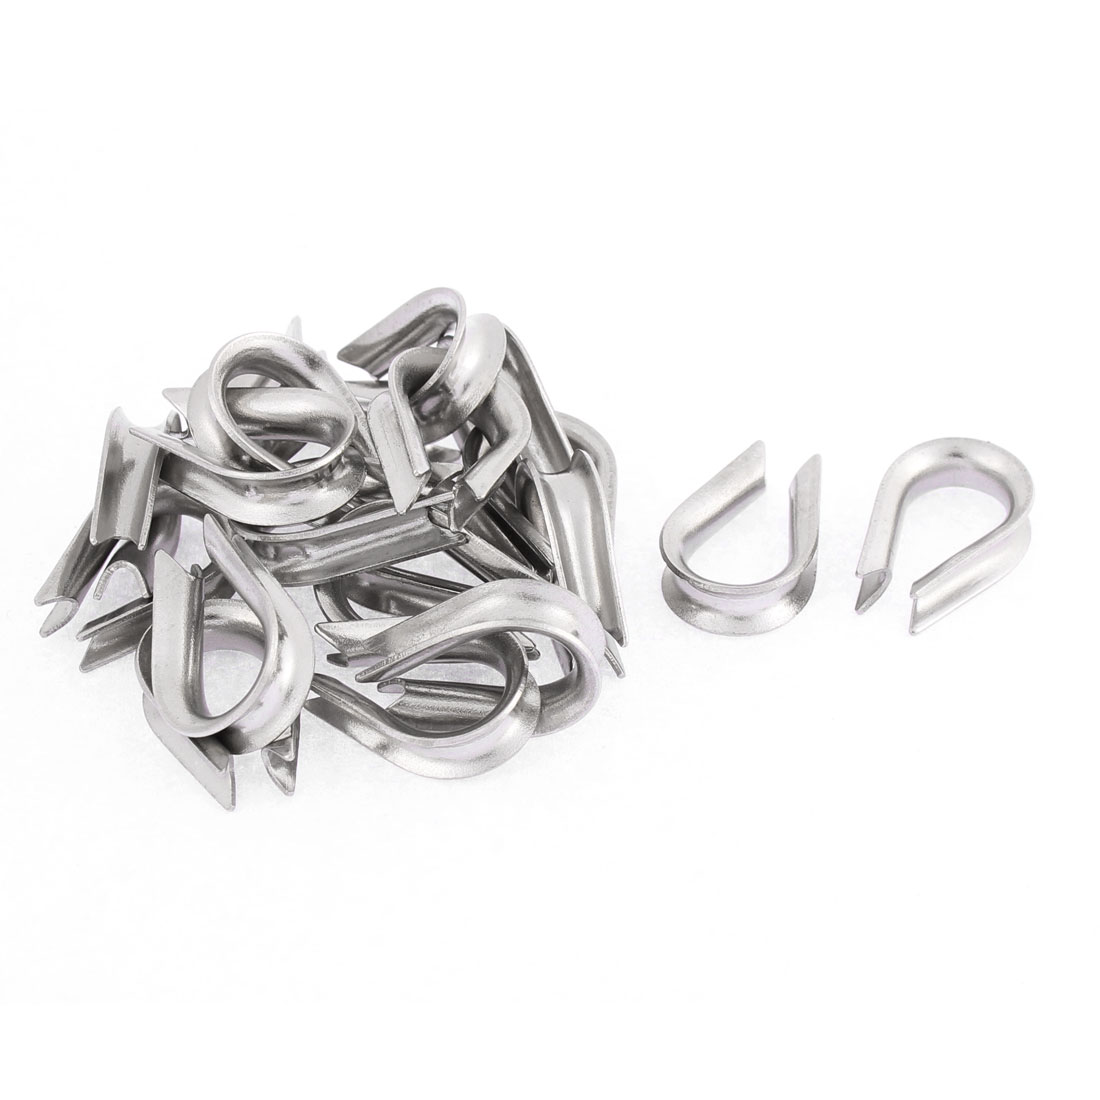 Stainless Steel 3mm Standard Wire Rope Cable Thimbles Rigging Lifting Gear 20pcs